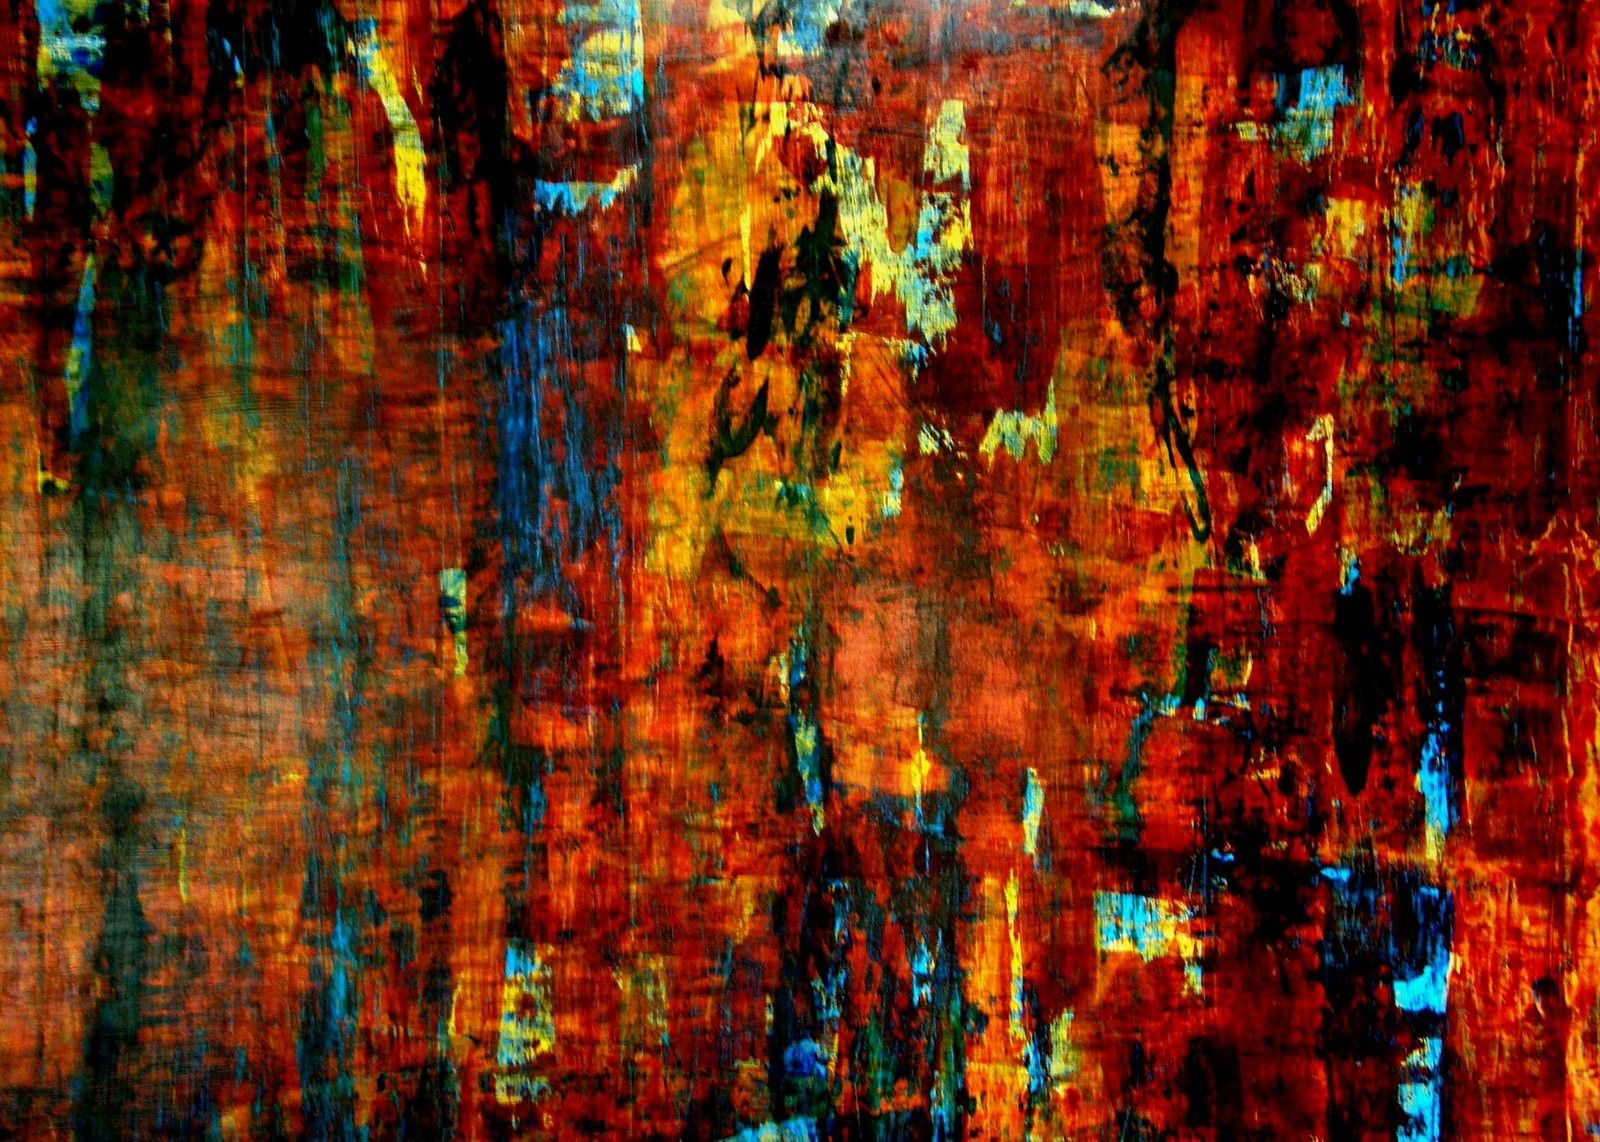 Abstract Oil Painting Wallpaper Hd - HD Wallpaper